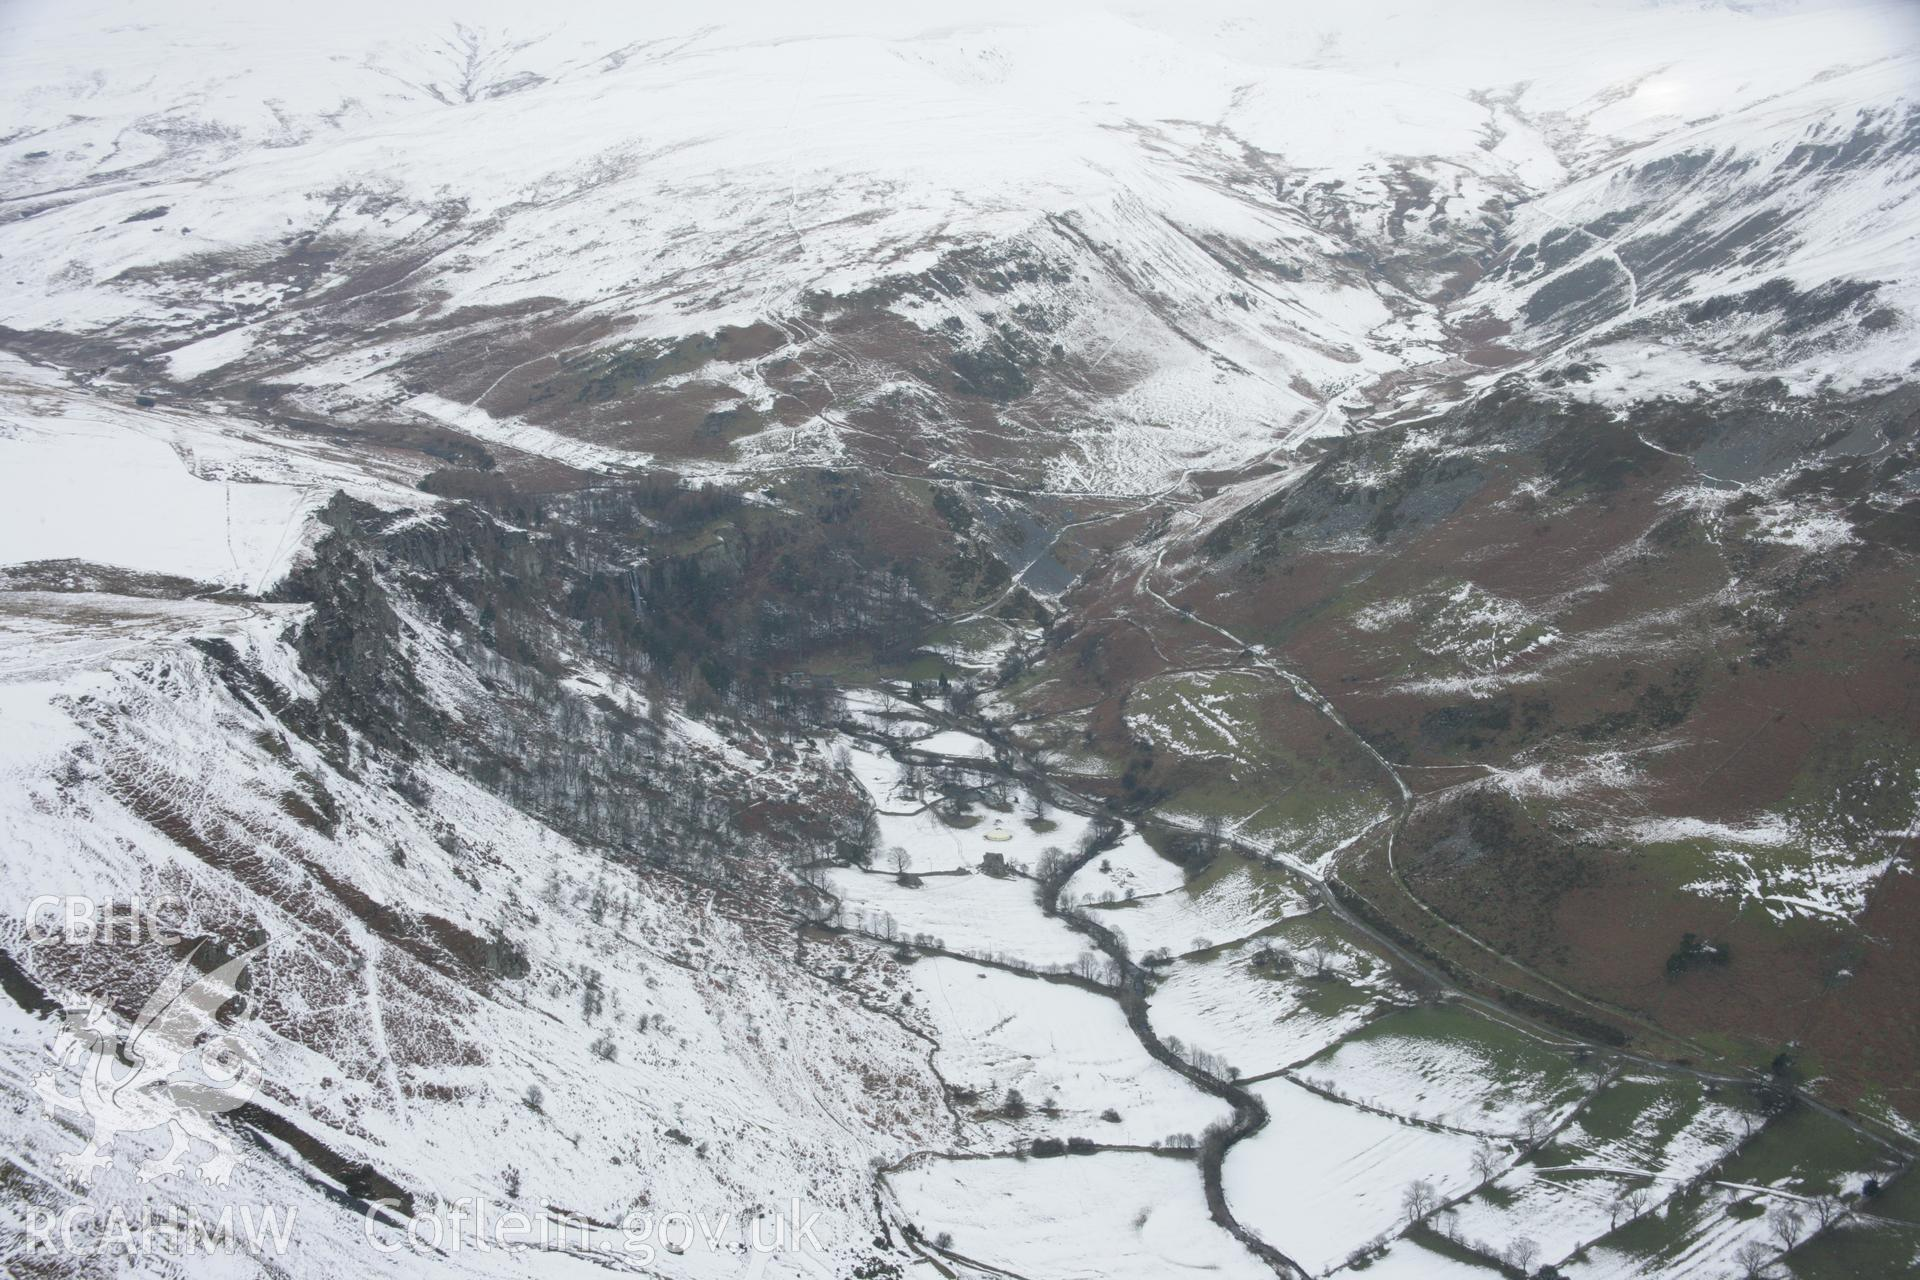 RCAHMW colour oblique aerial photograph of Cwm Blowty and Pistyll Rhaeadr Waterfall and Walks, under snow in a landscape view from the south-east. Taken on 06 March 2006 by Toby Driver.